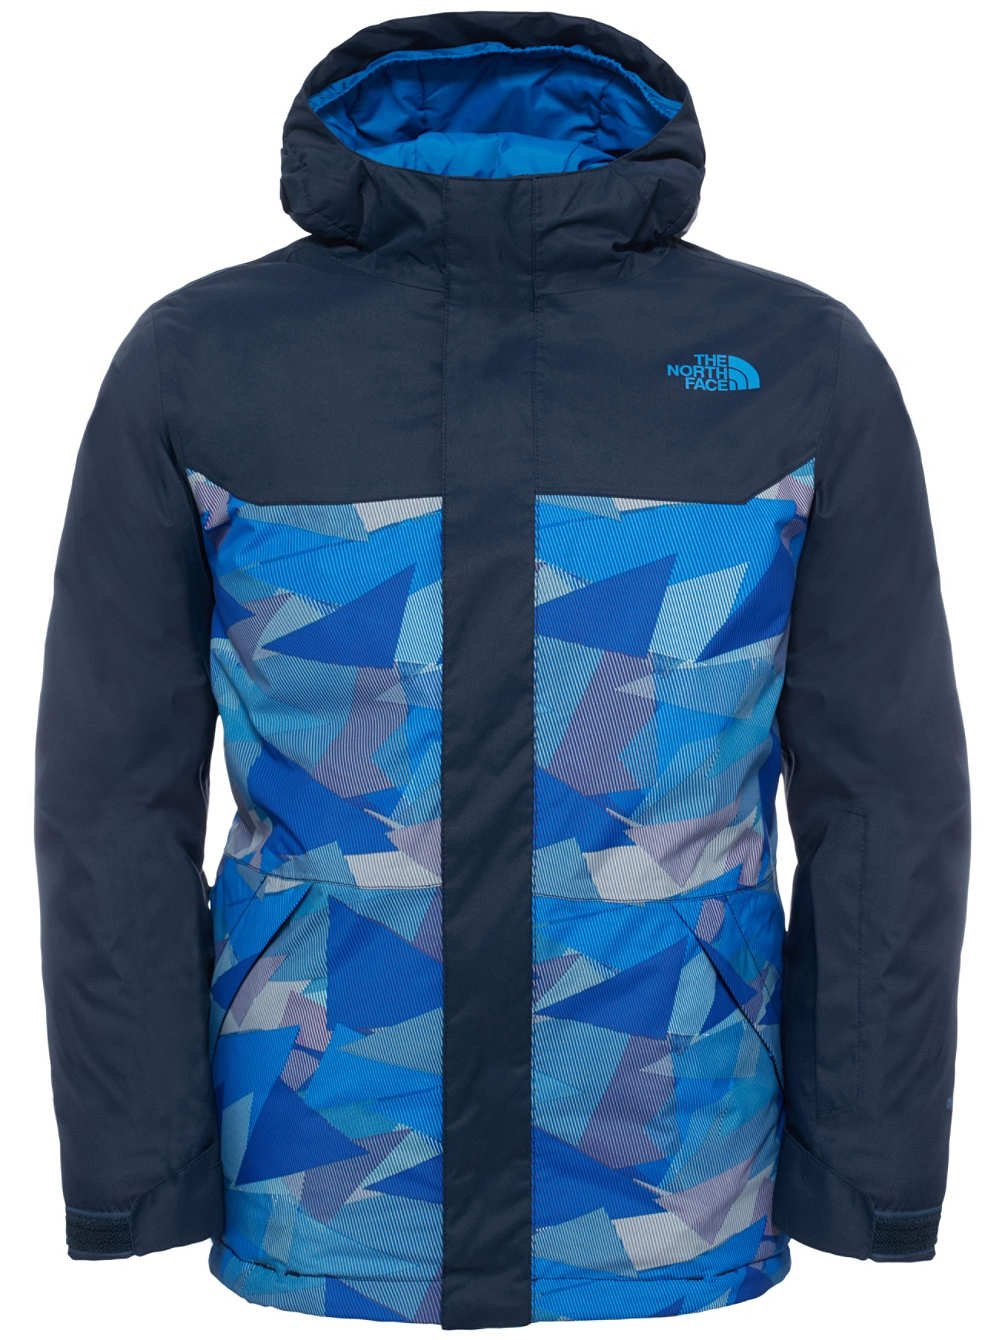 4f46ad8fa96d0 The North Face Brayden Insulated Boys Ski Jacket X-Large/Jake Blue Geo Camo  T92TL8 Sports ...